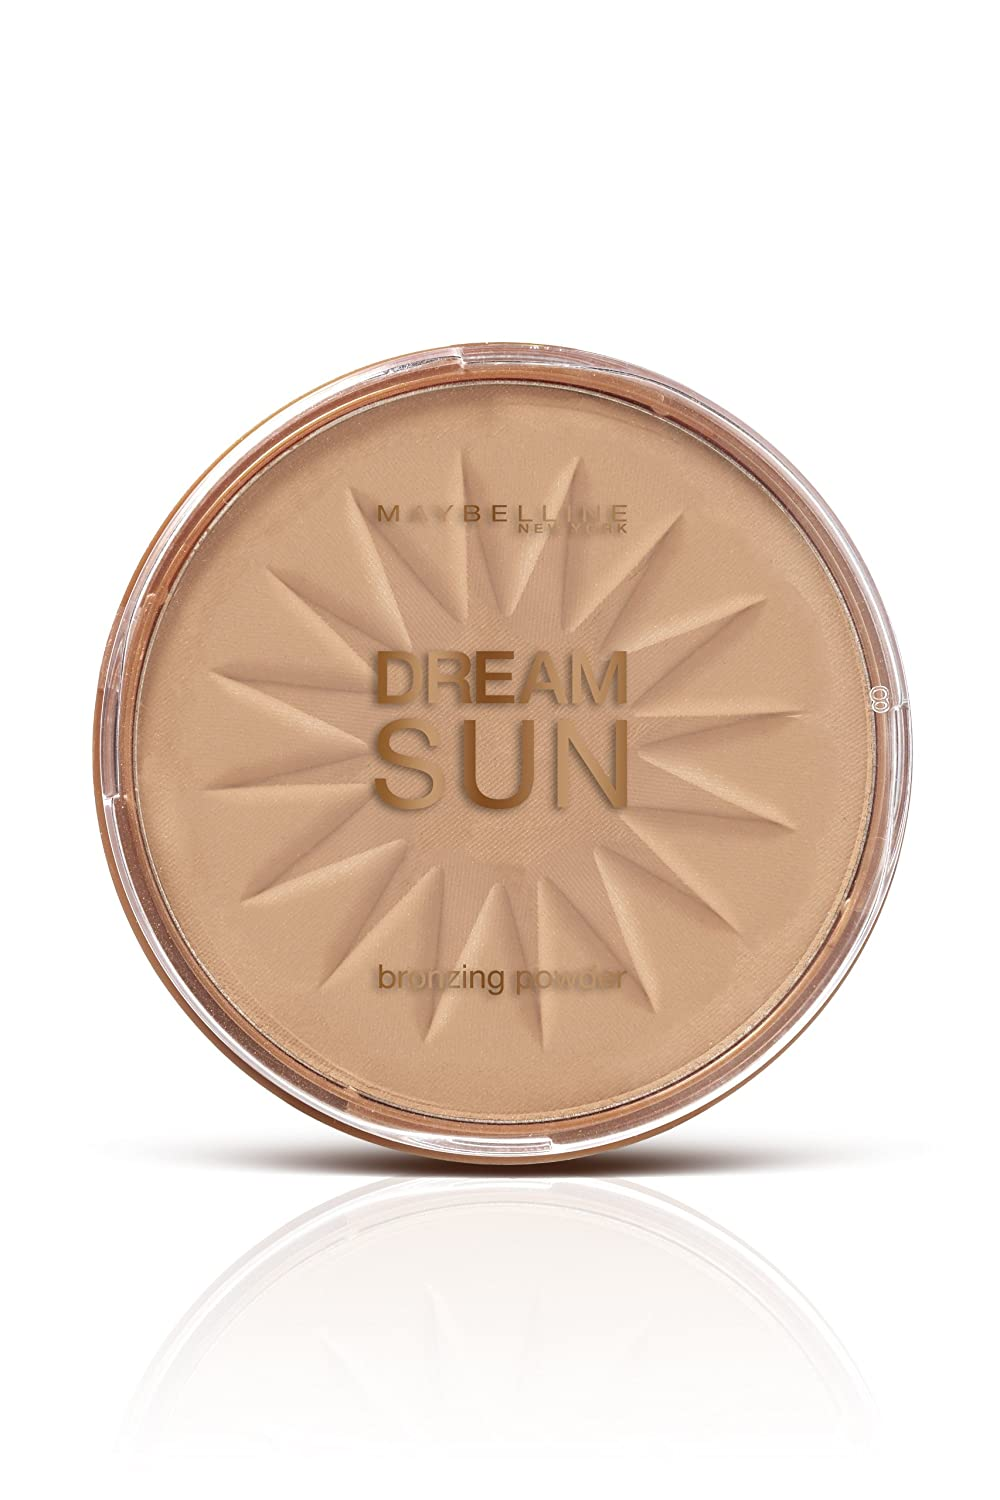 Gemey-Maybelline - Dream Sun - Polvos Bronceadores - 02 dom hale L'Oreal